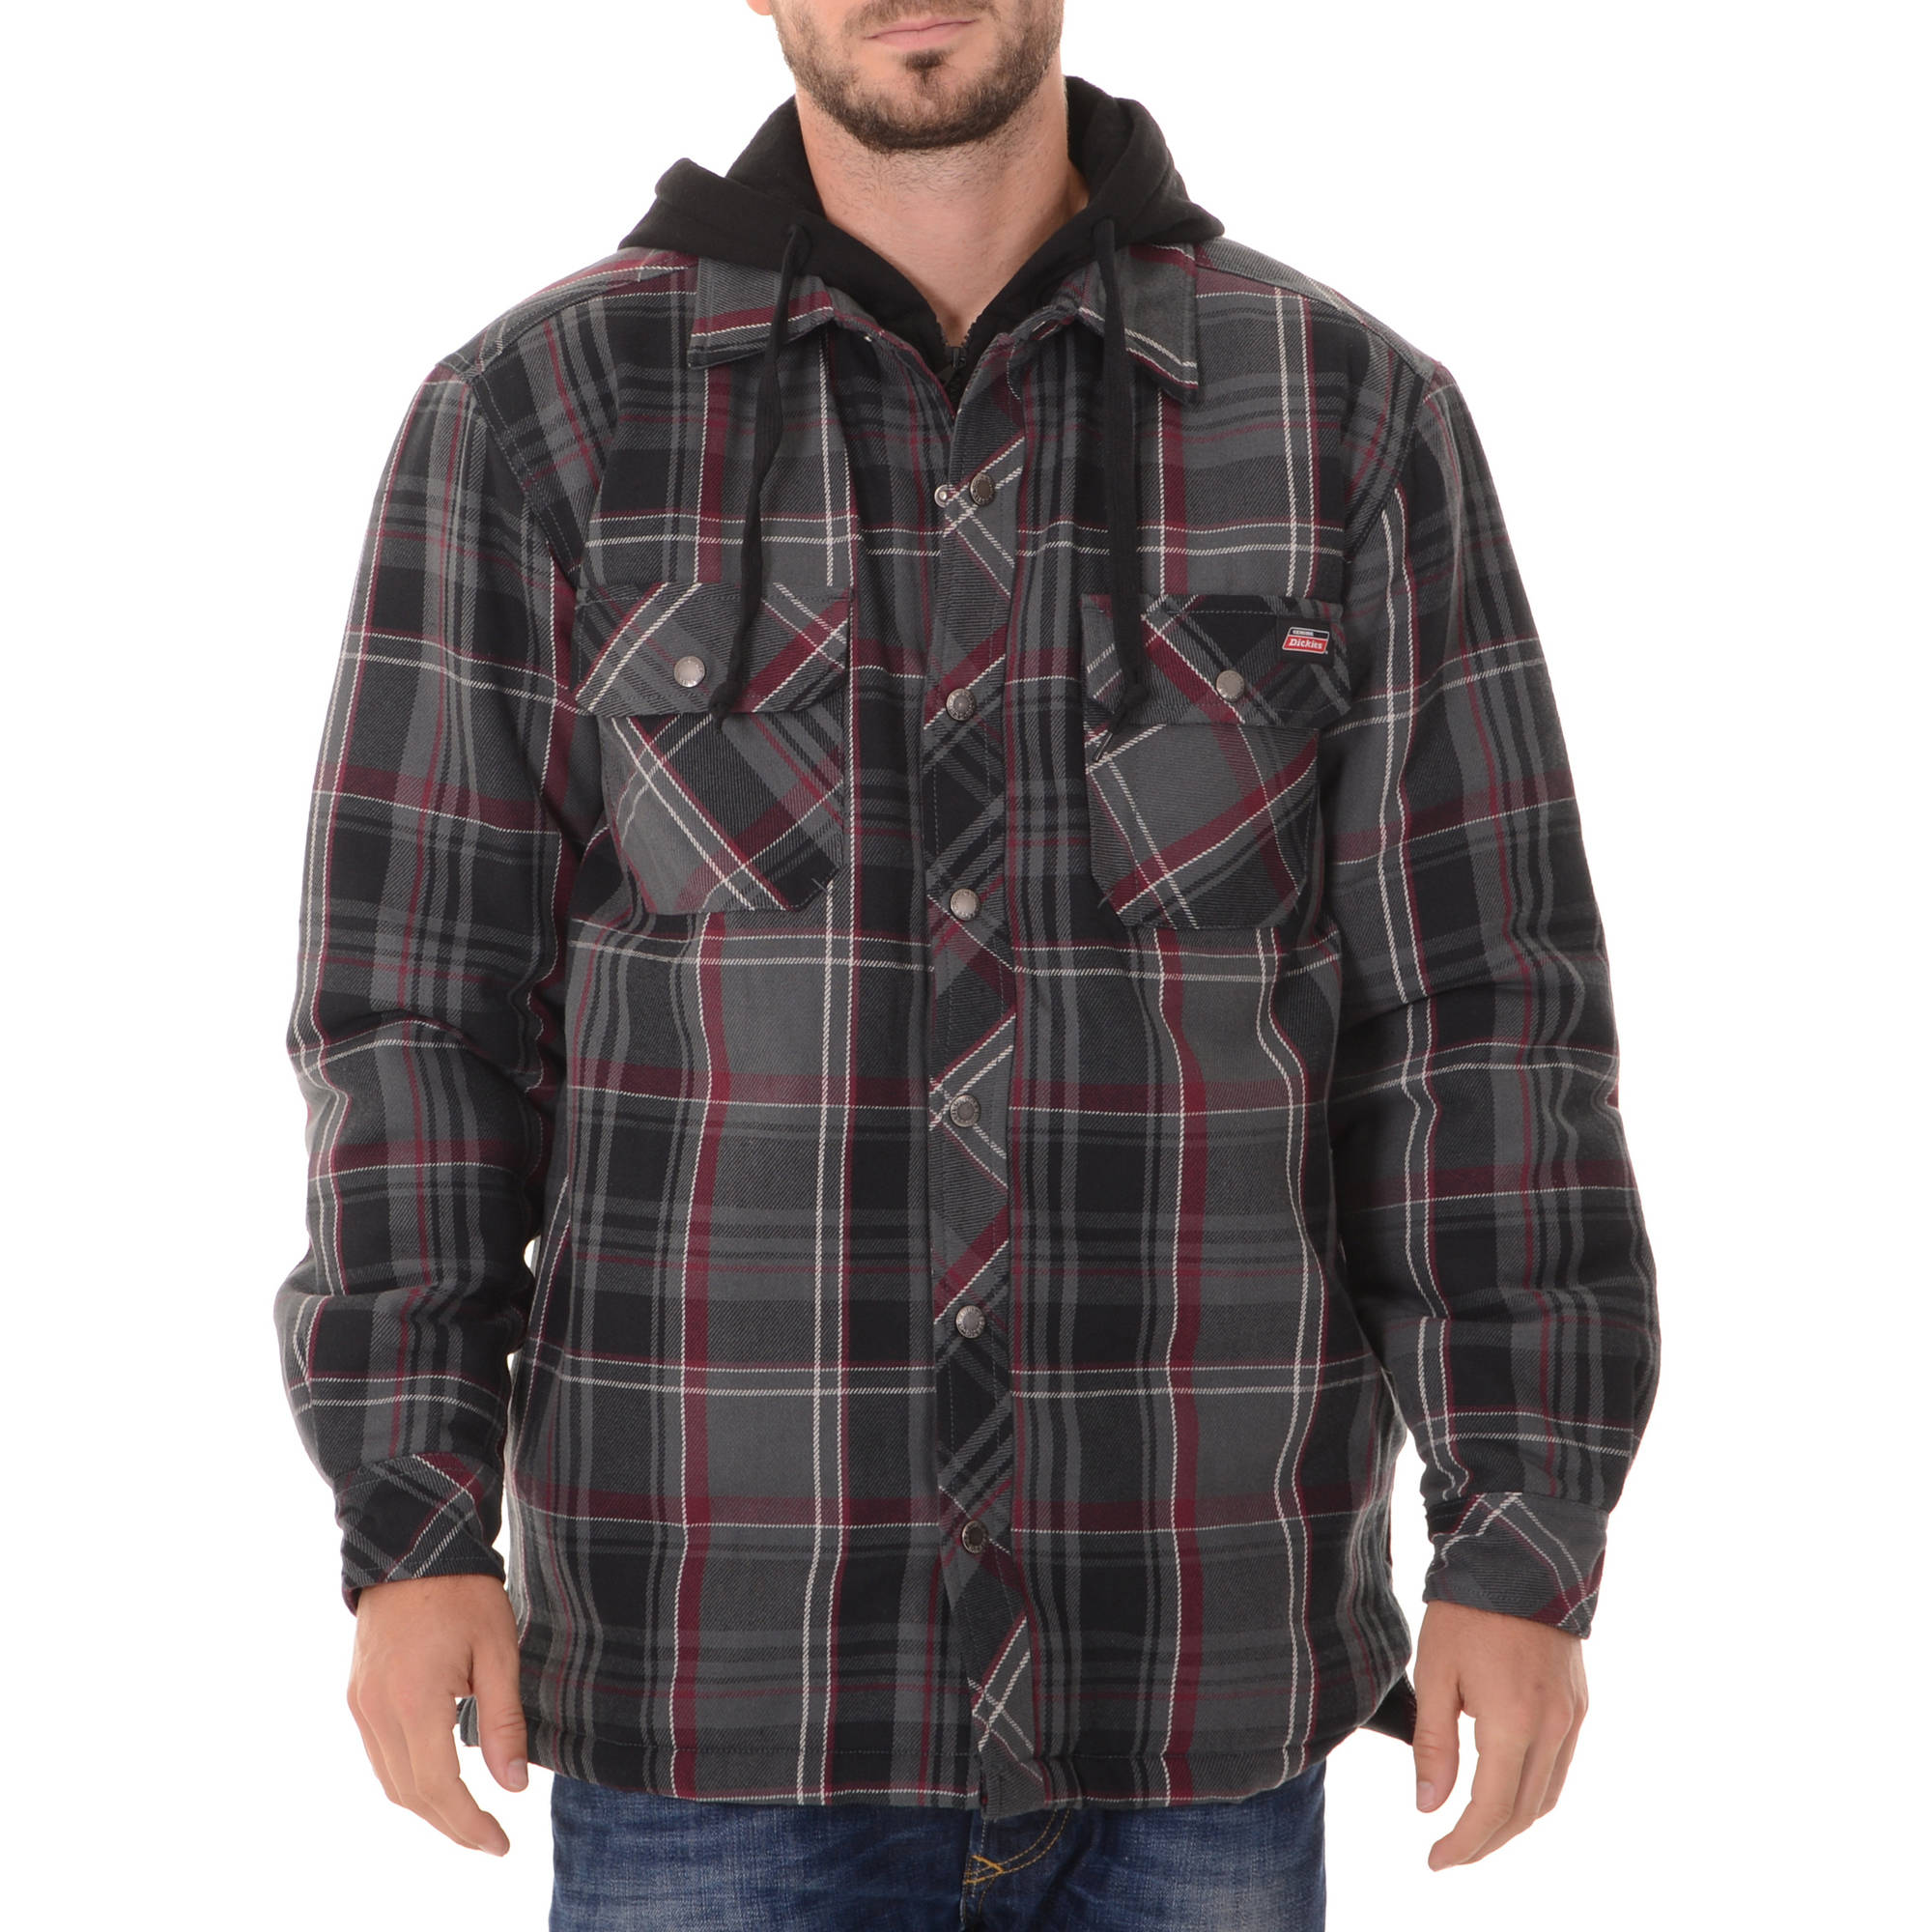 Dickies Men's Flannel Shirt Jacket